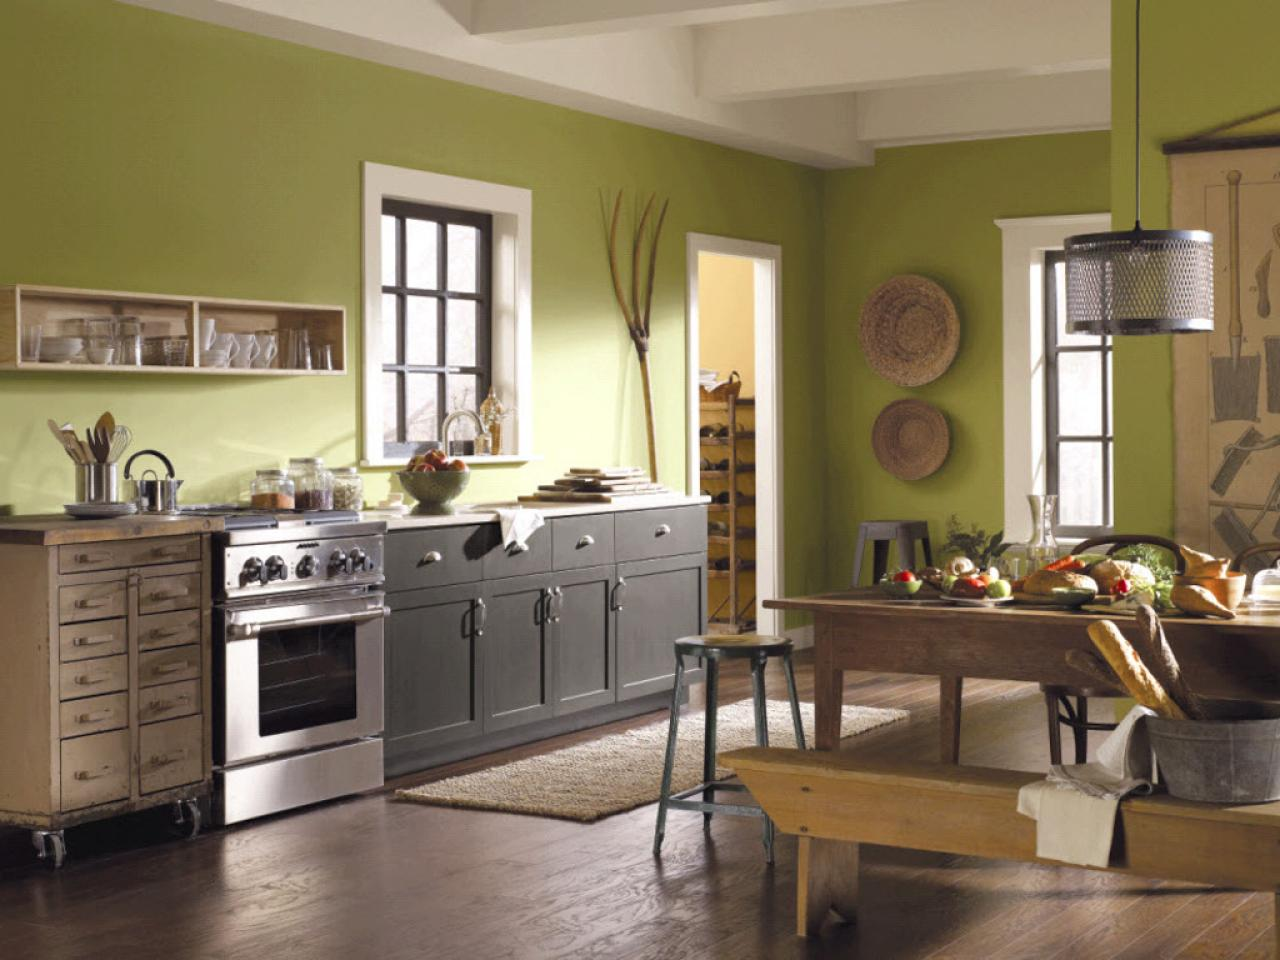 Smooth Green Paint Color For Kitchen Design With Wall Art And Storage Gray Cabinet